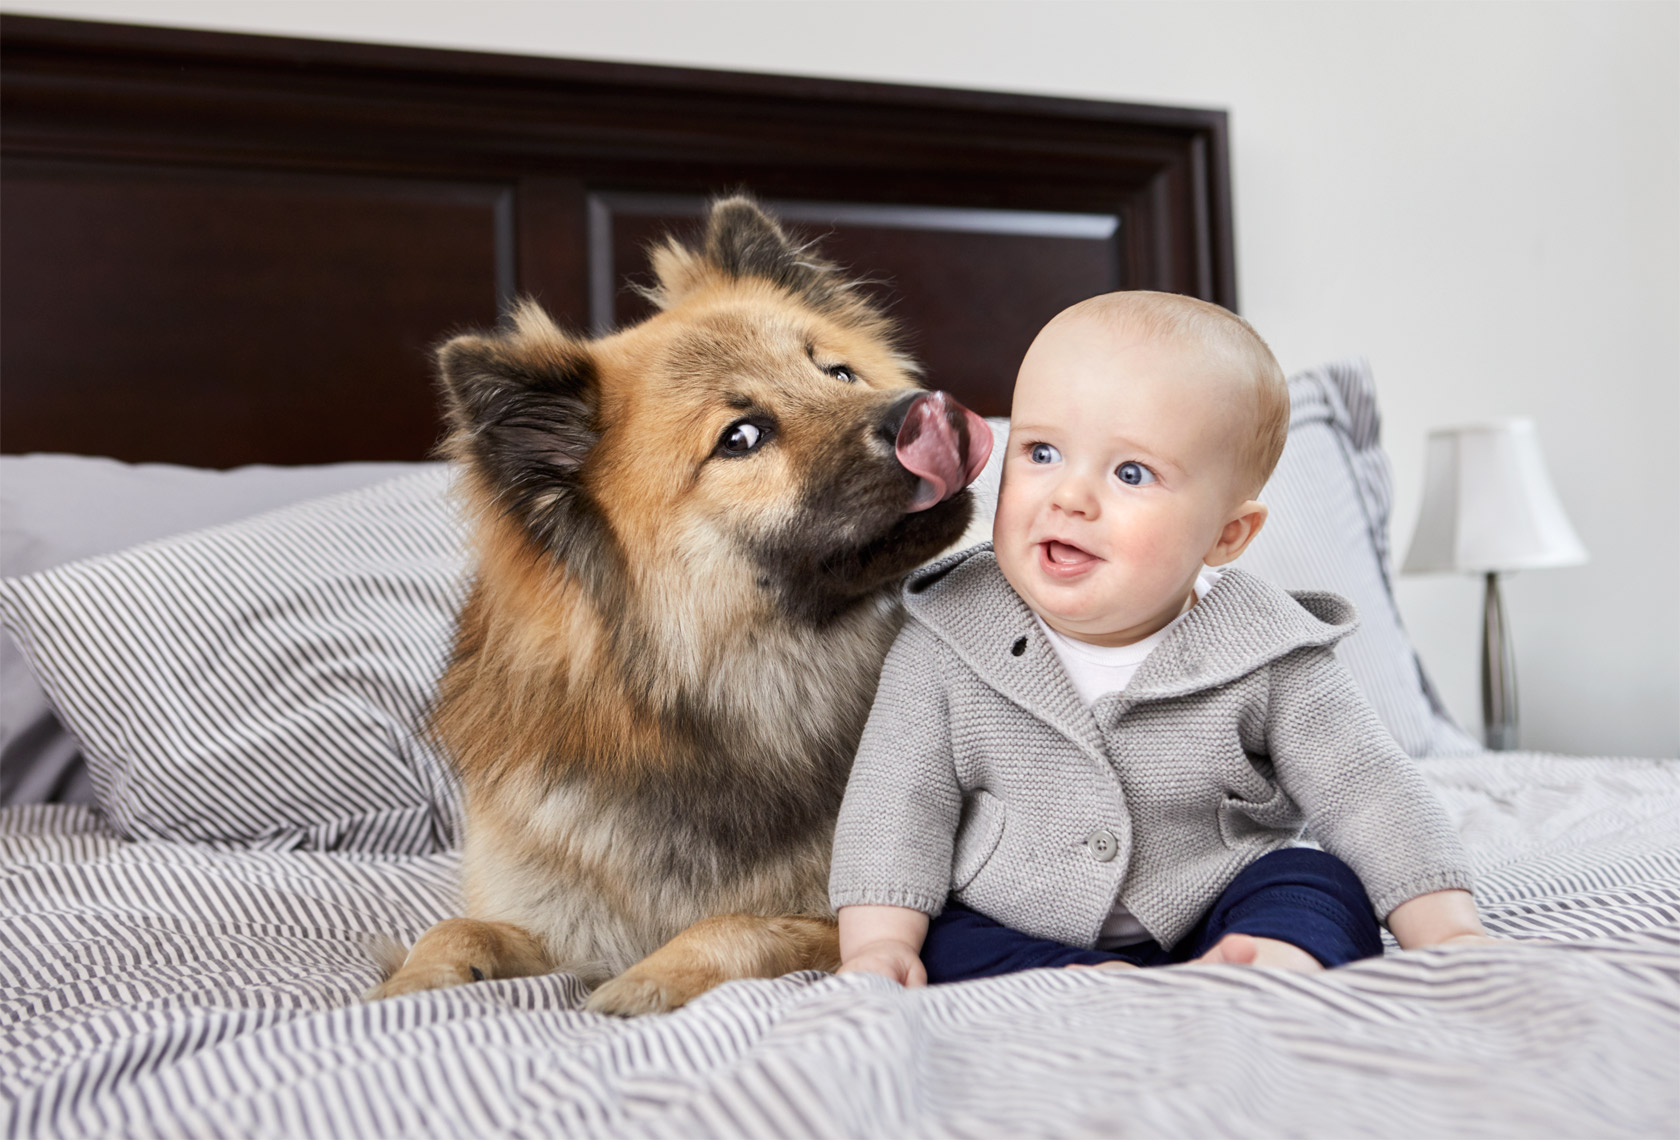 Baby and Large dog